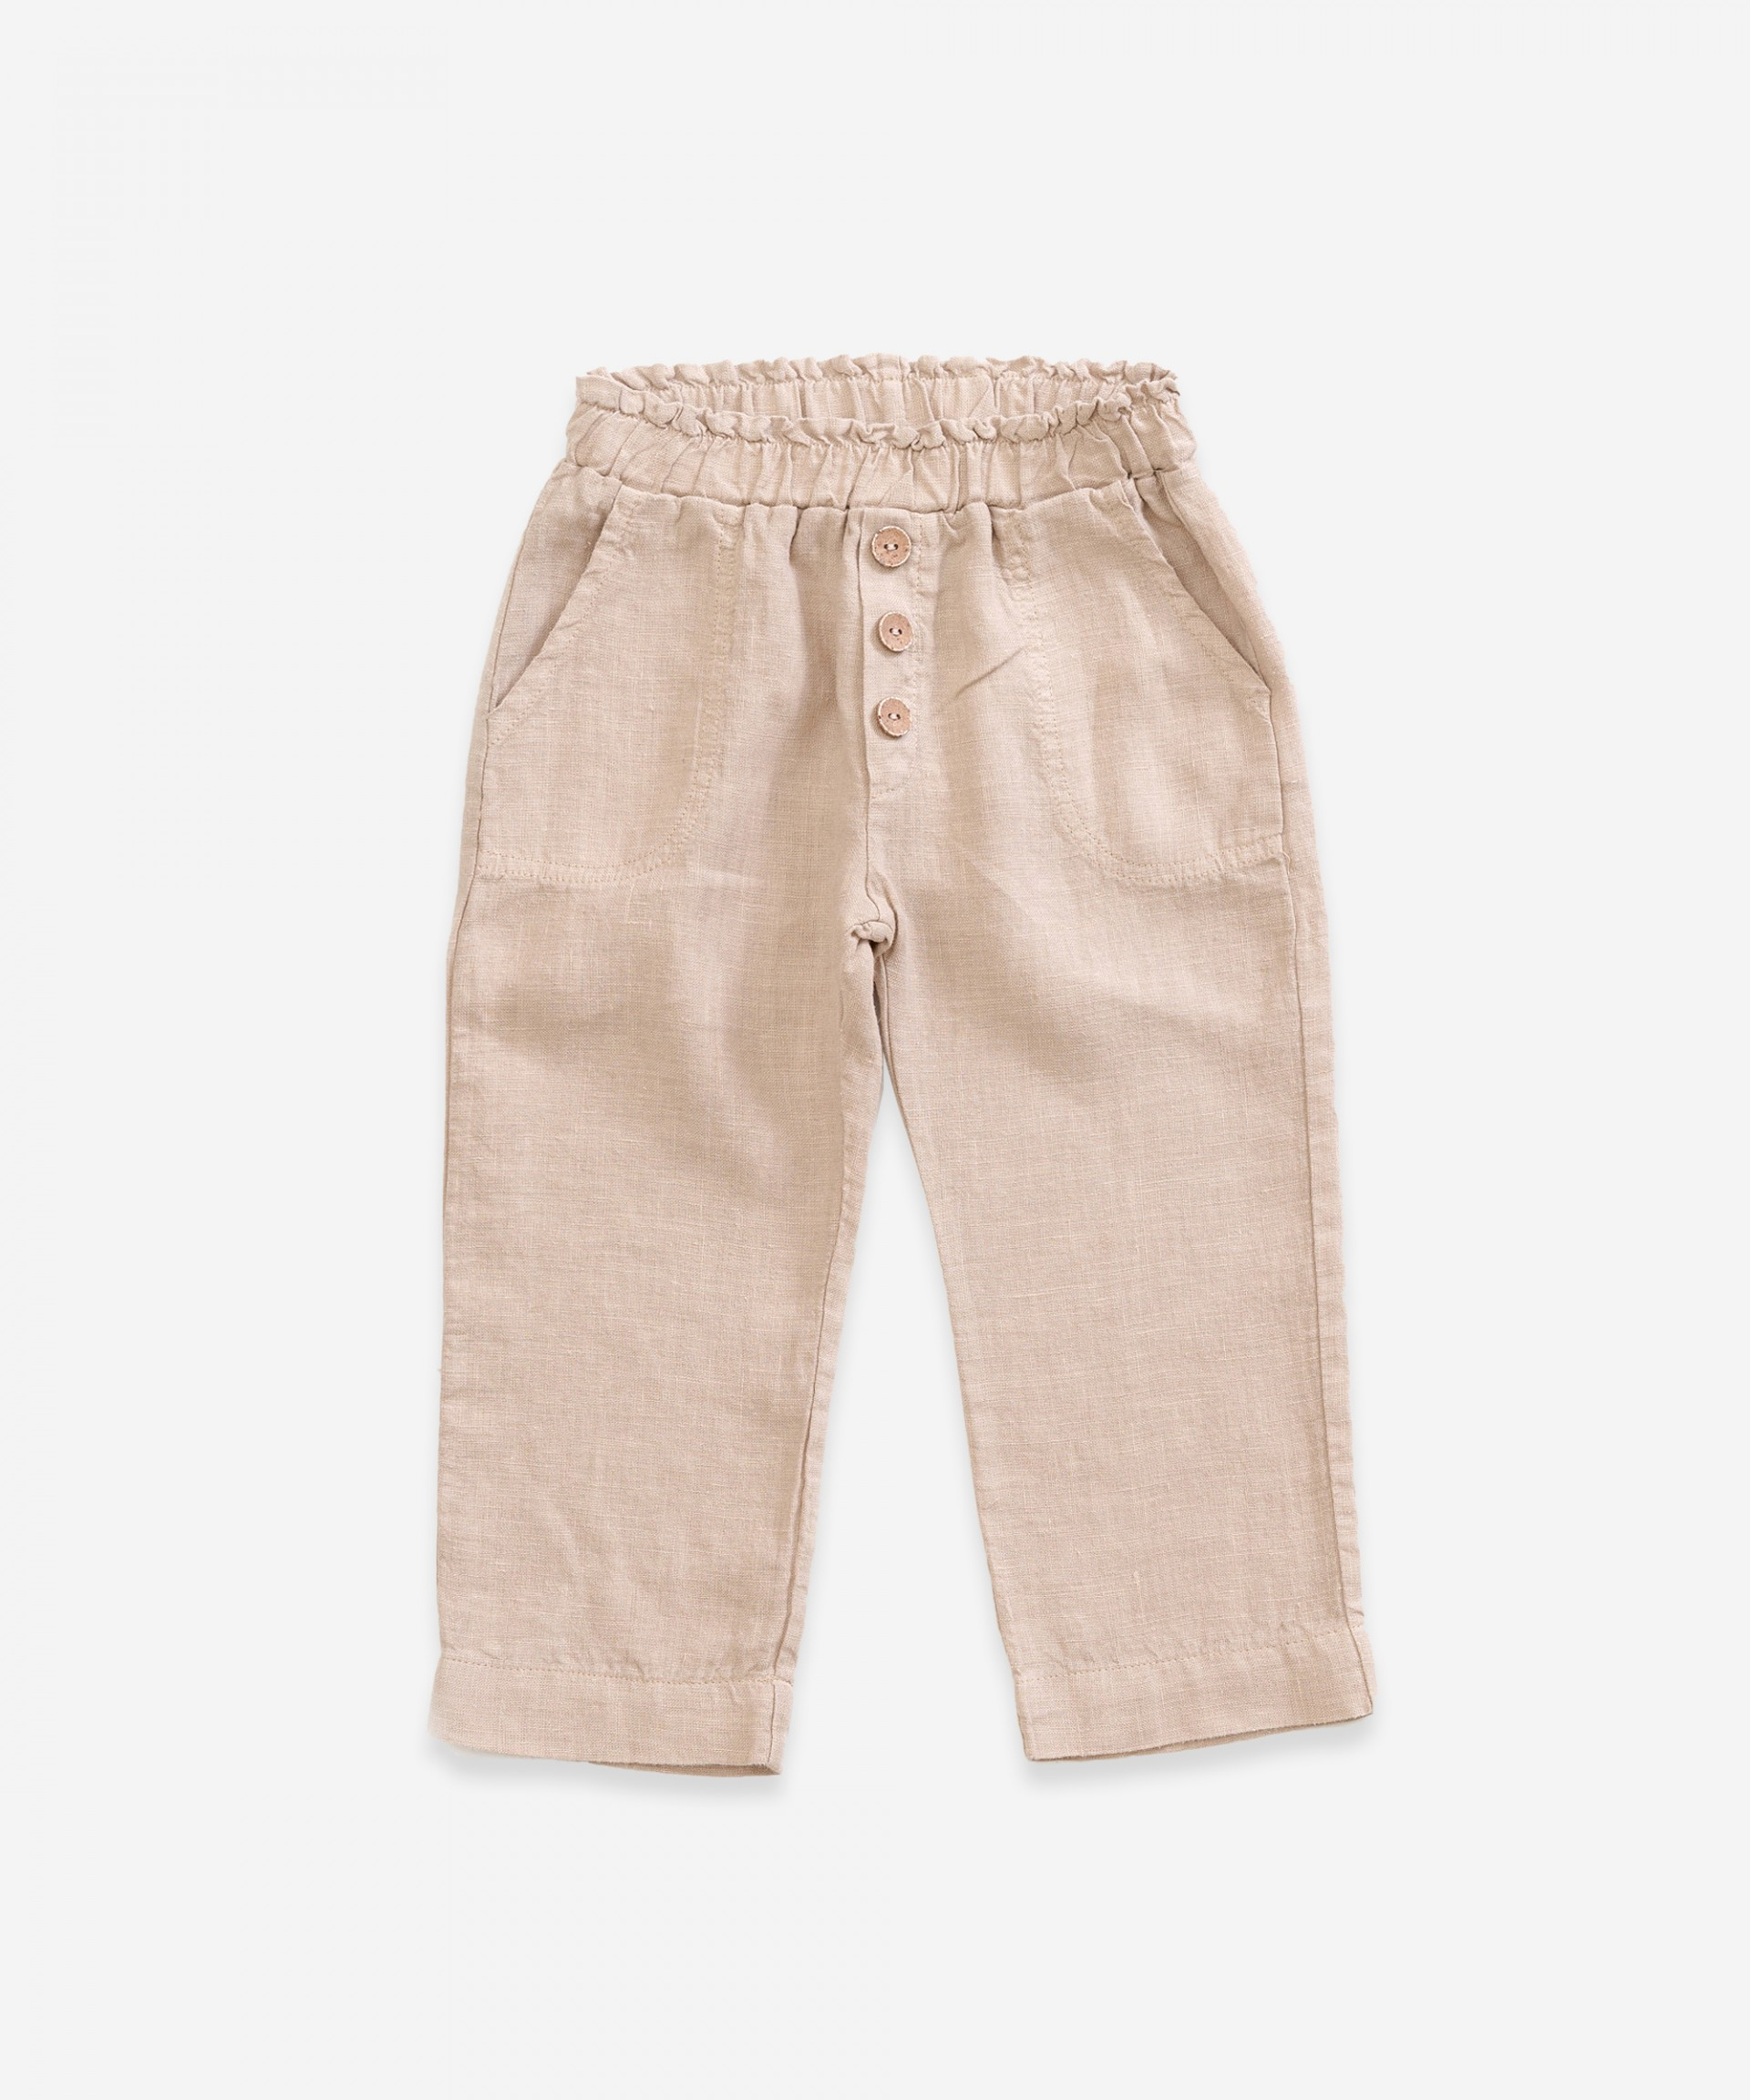 Linen trousers with pockets | Weaving